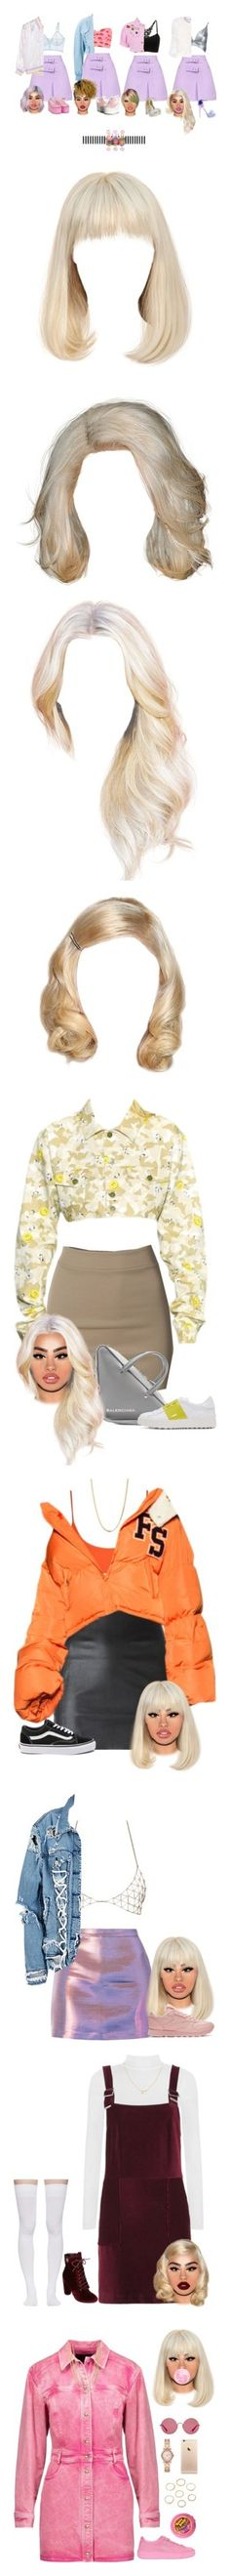 """Angelica"" by flaaaawless81 ❤ liked on Polyvore featuring La Perla, River Island, Boohoo, Moschino, Miu Miu, Balmain, Lime Crime, Gianmarco Lorenzi, UNIF and hair"